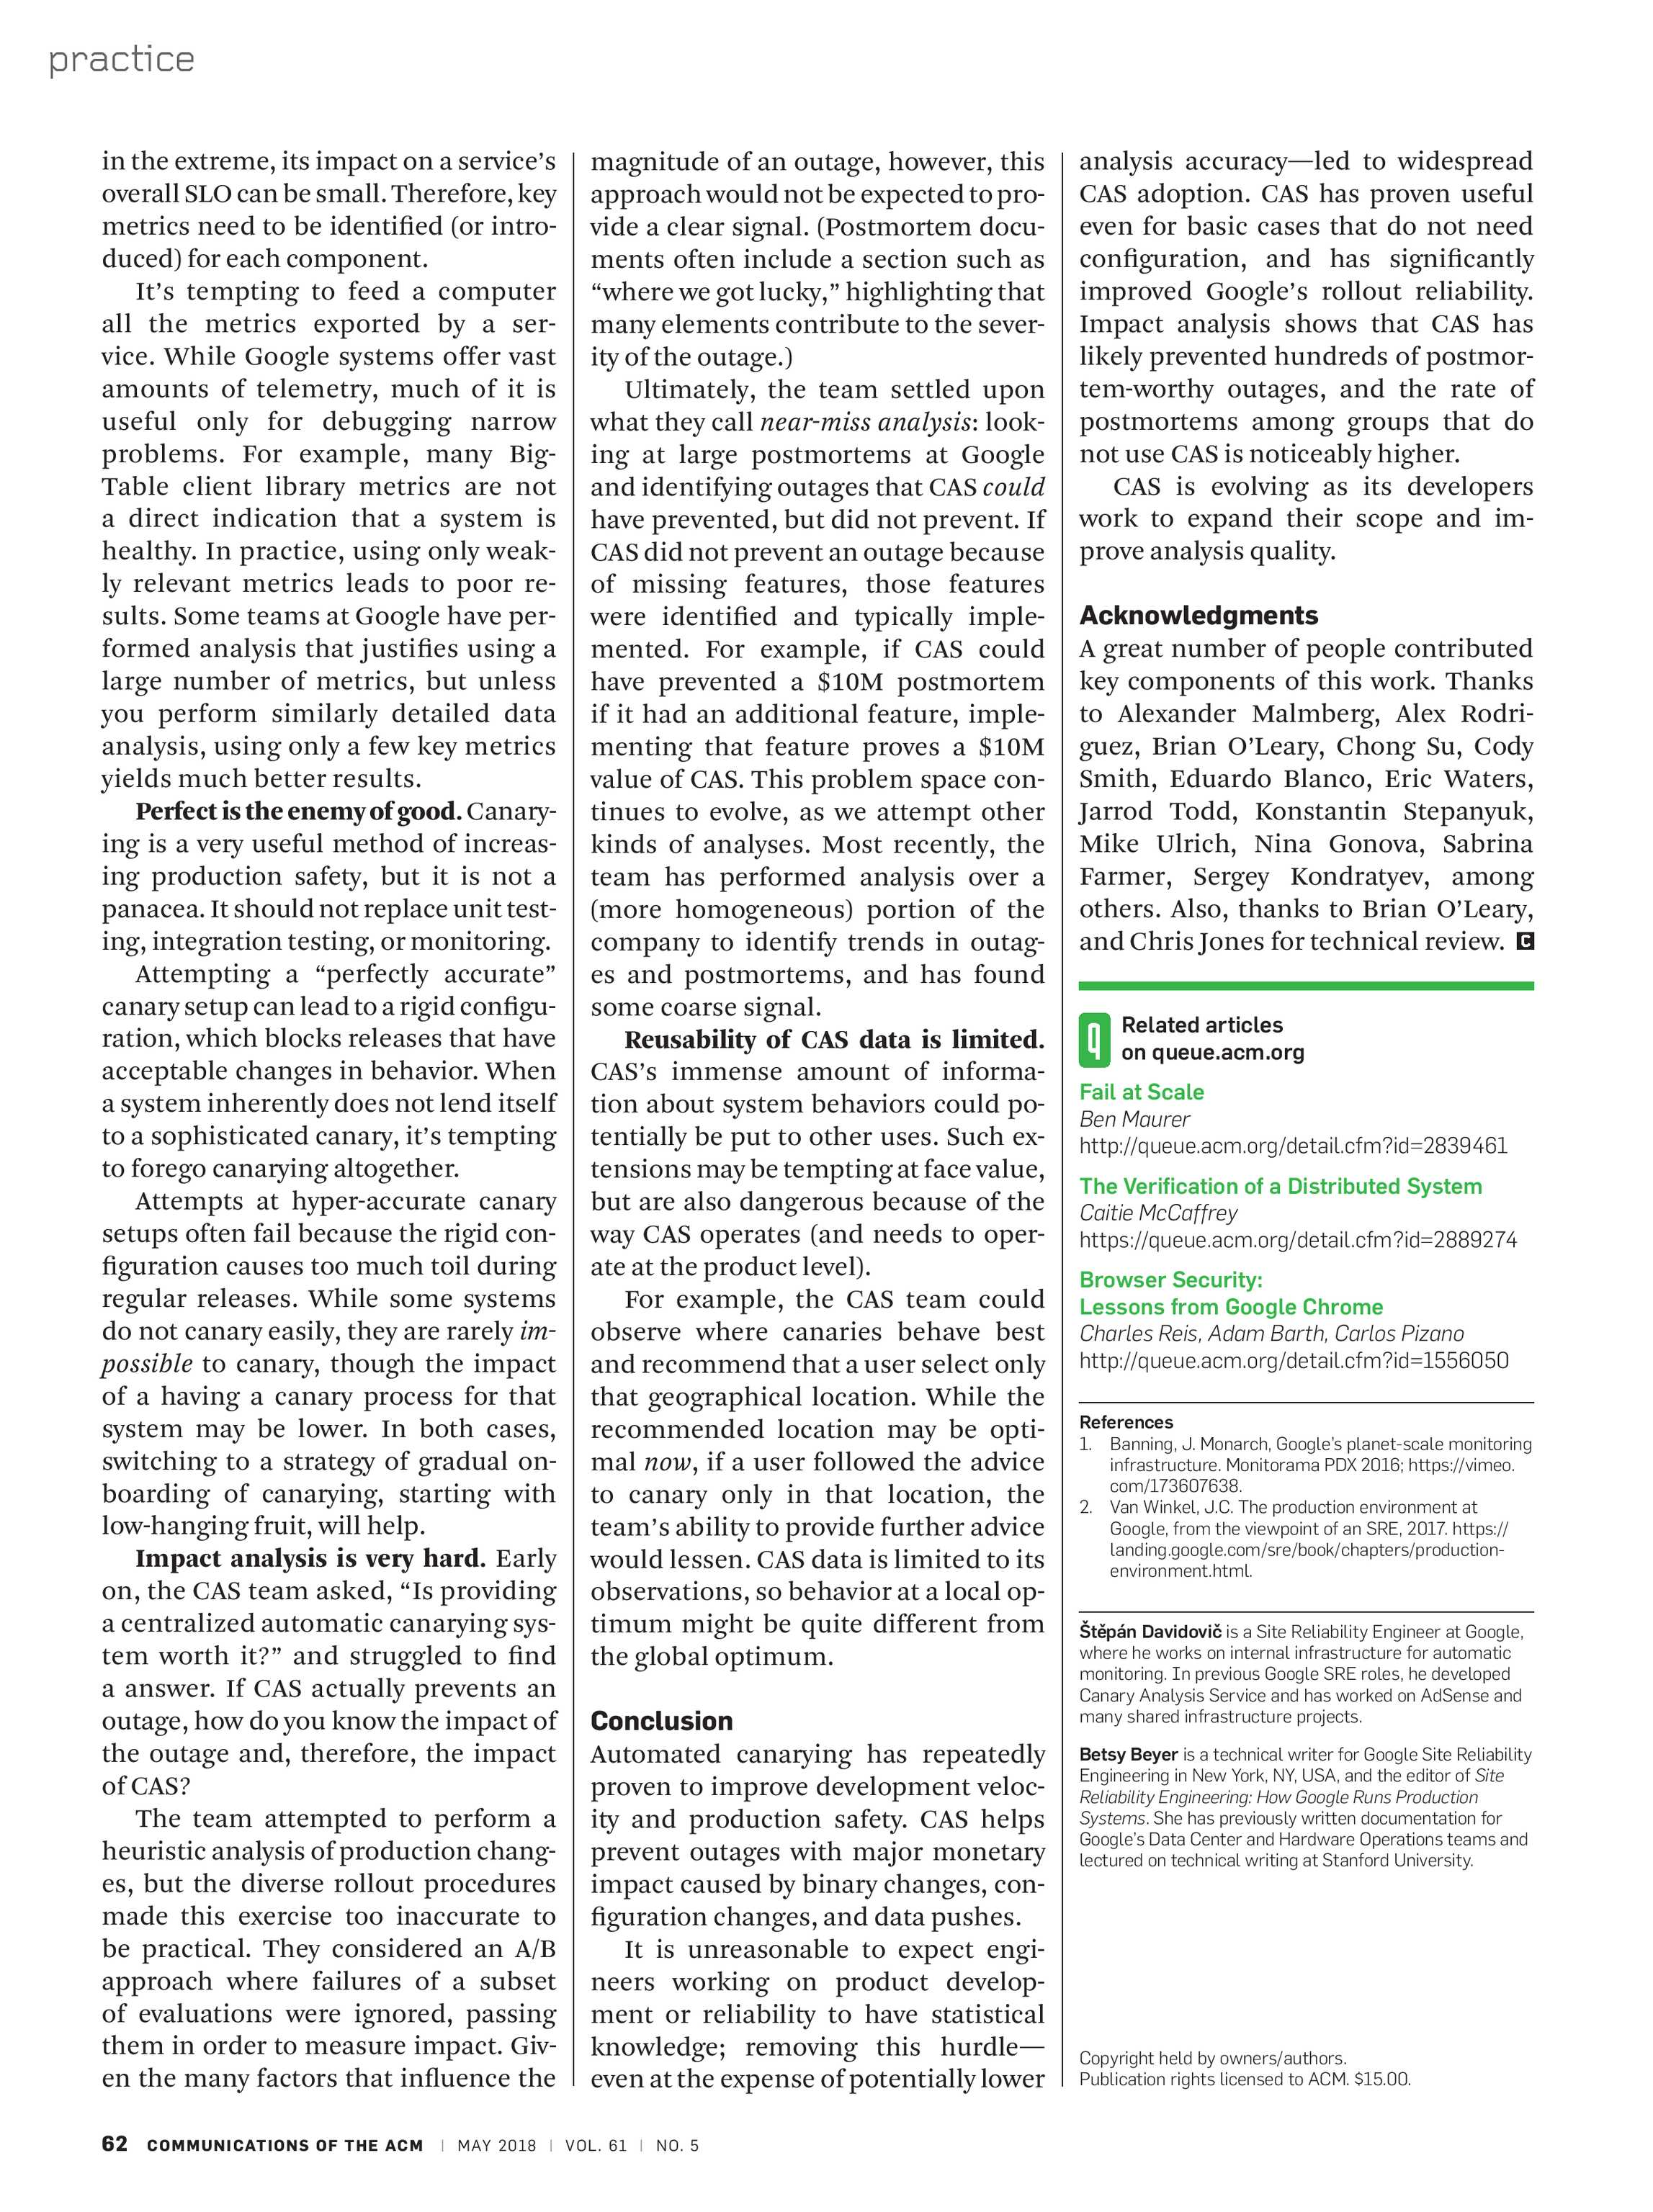 Communications of the ACM - May 2018 - page 62